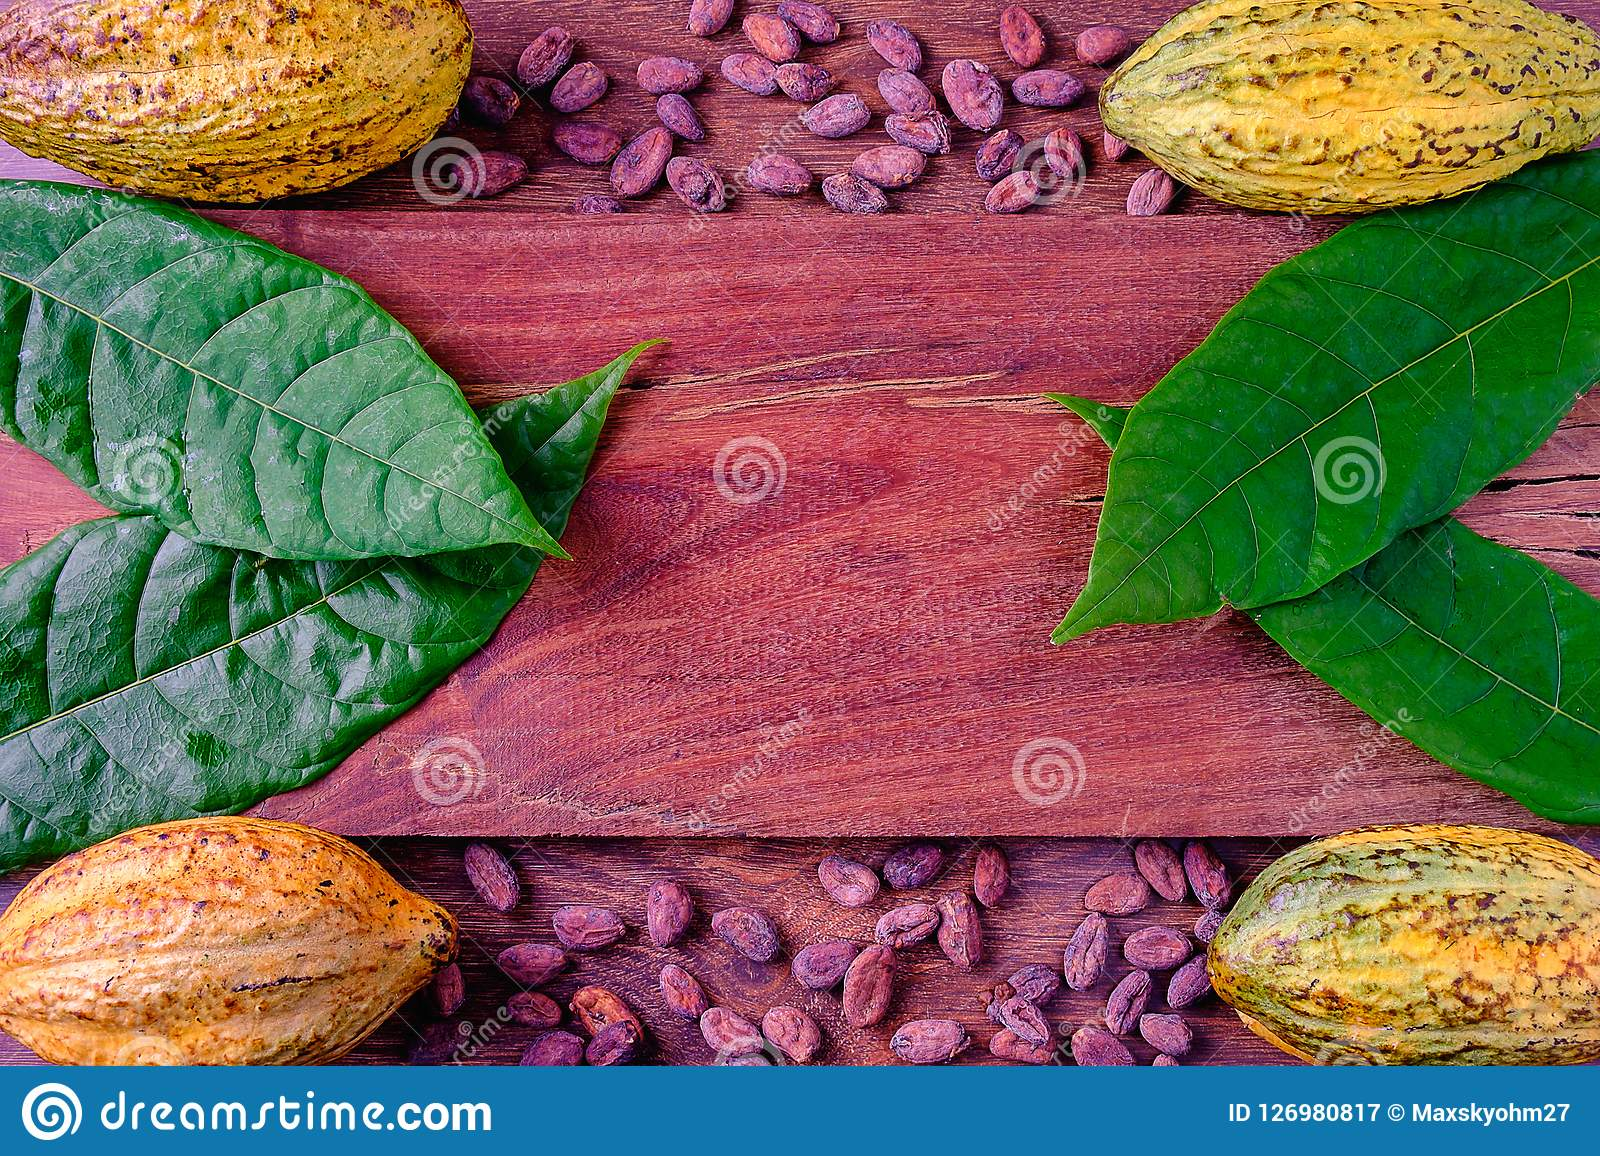 Fresh Cocoa and CocoaBean